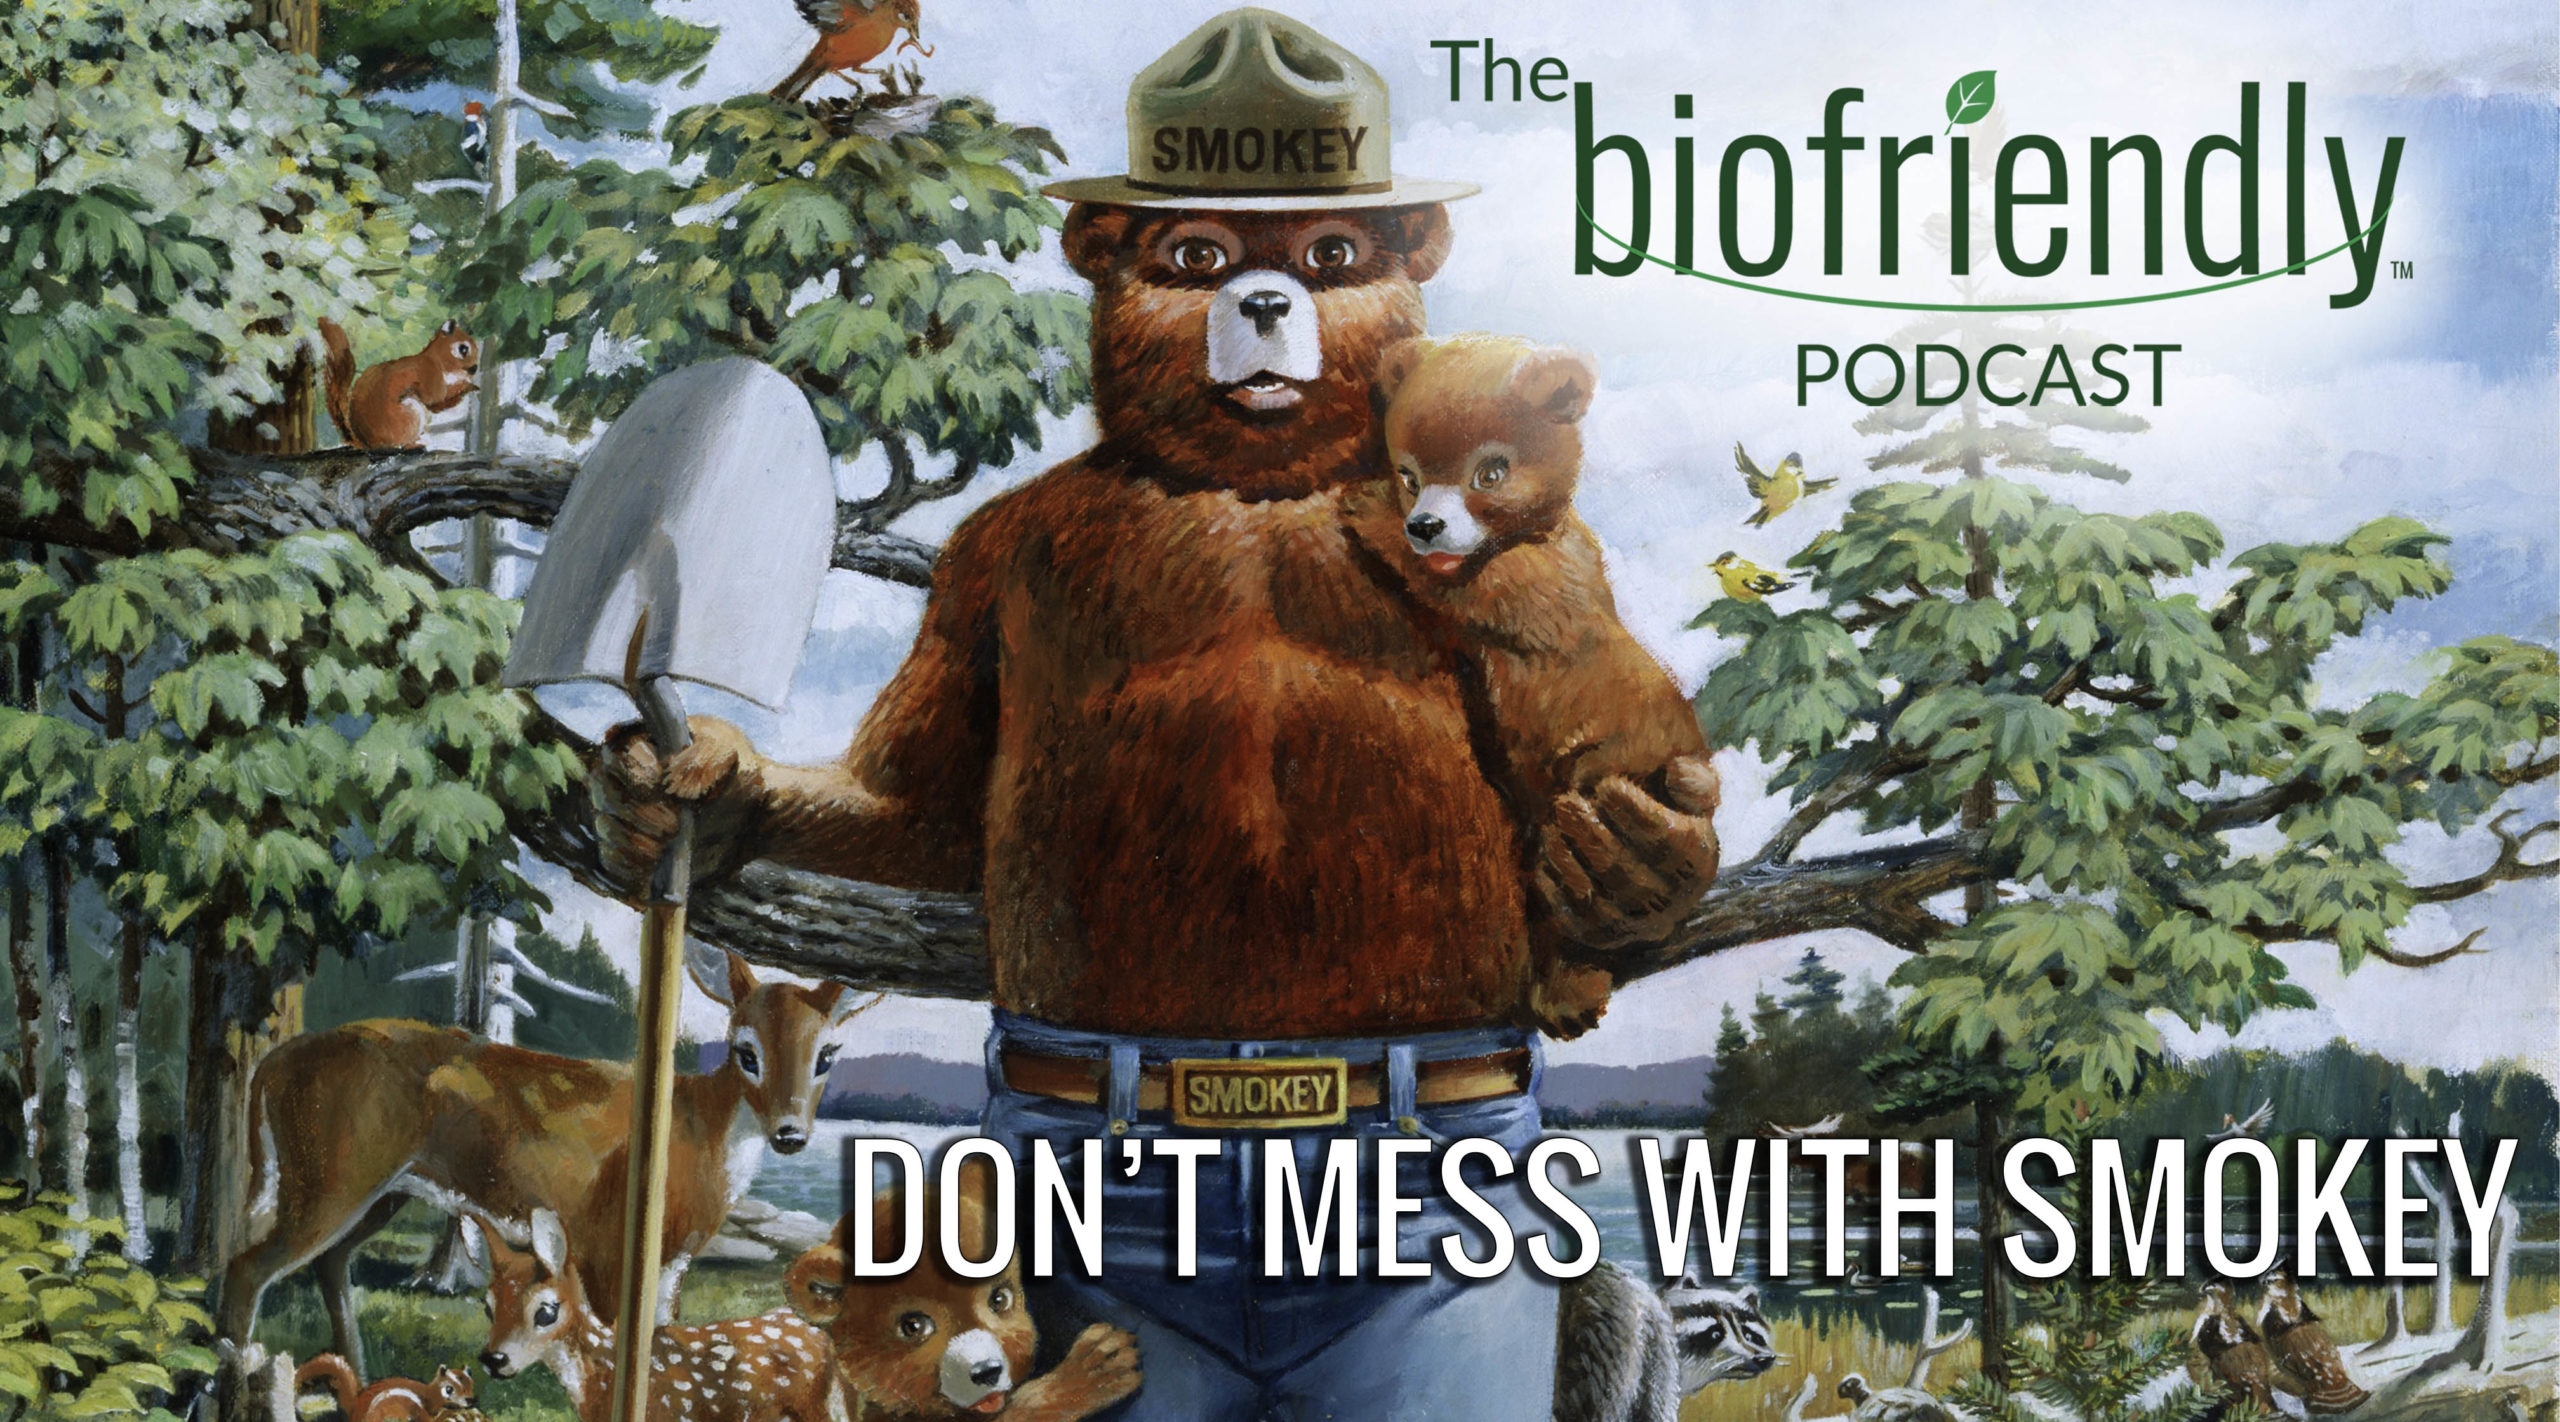 The Biofriendly Podcast - Episode 79 - Don't Mess With Smokey